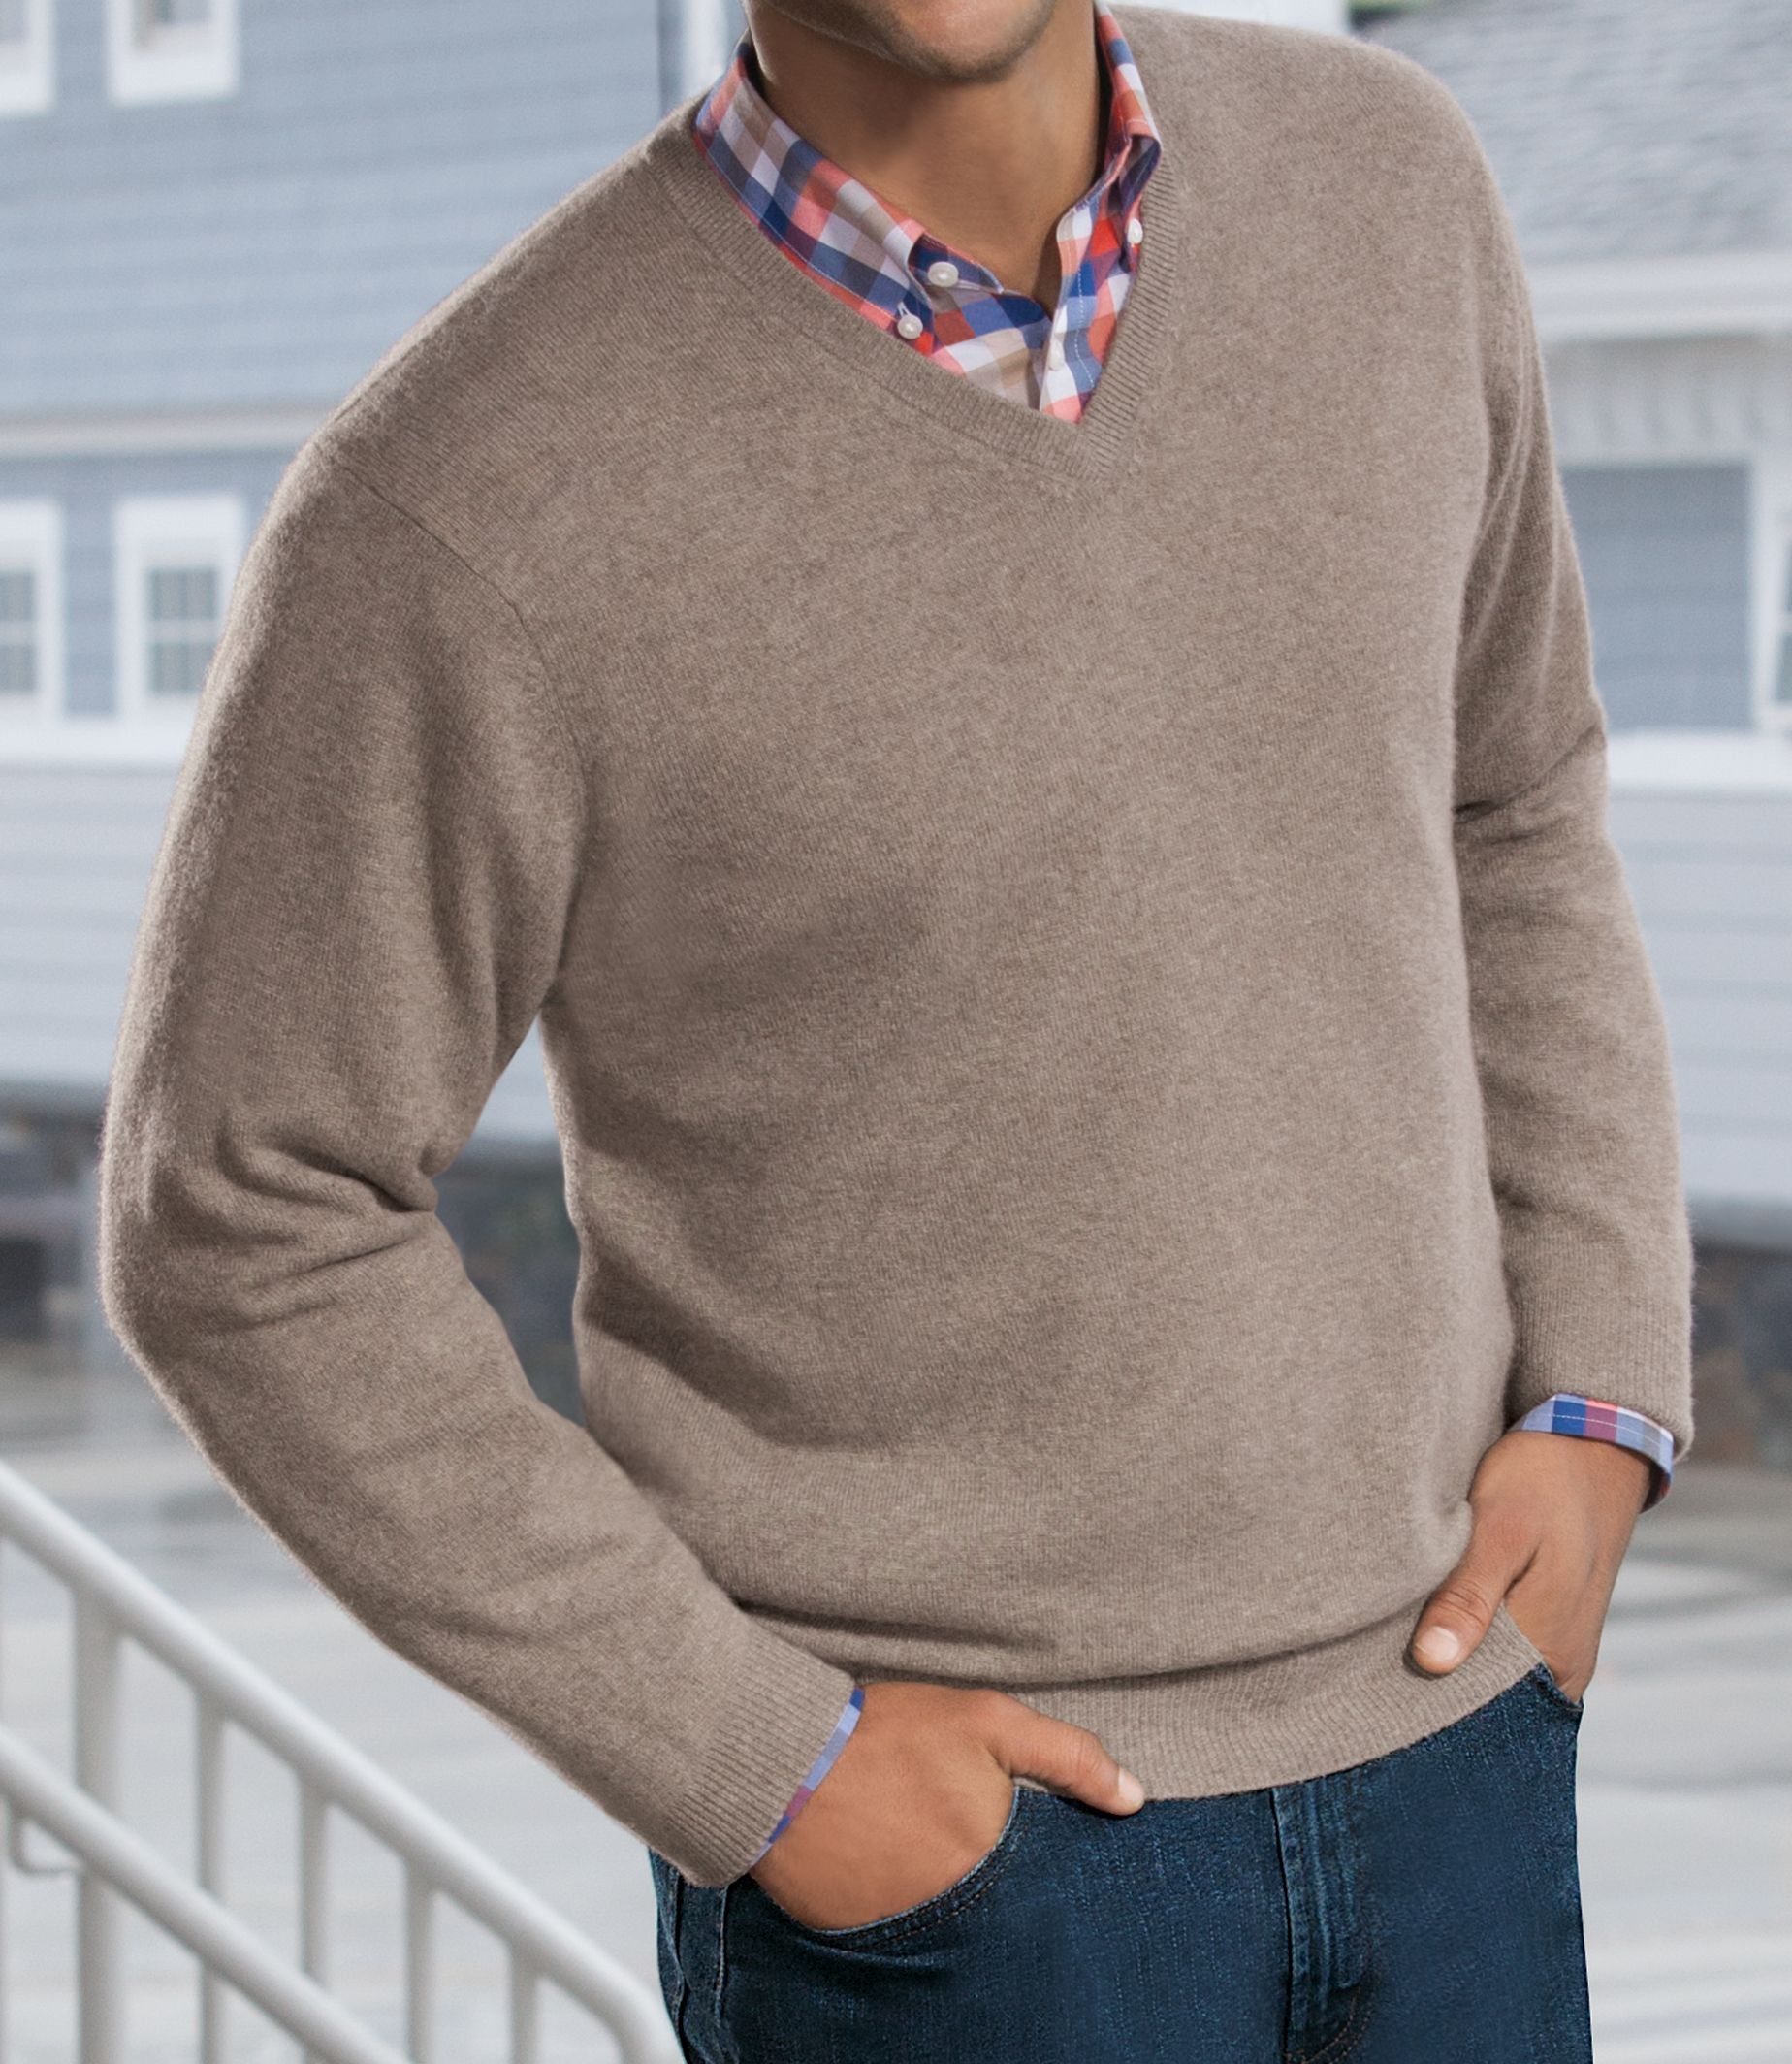 JoS. A. Bank V-Neck Mens Sweater